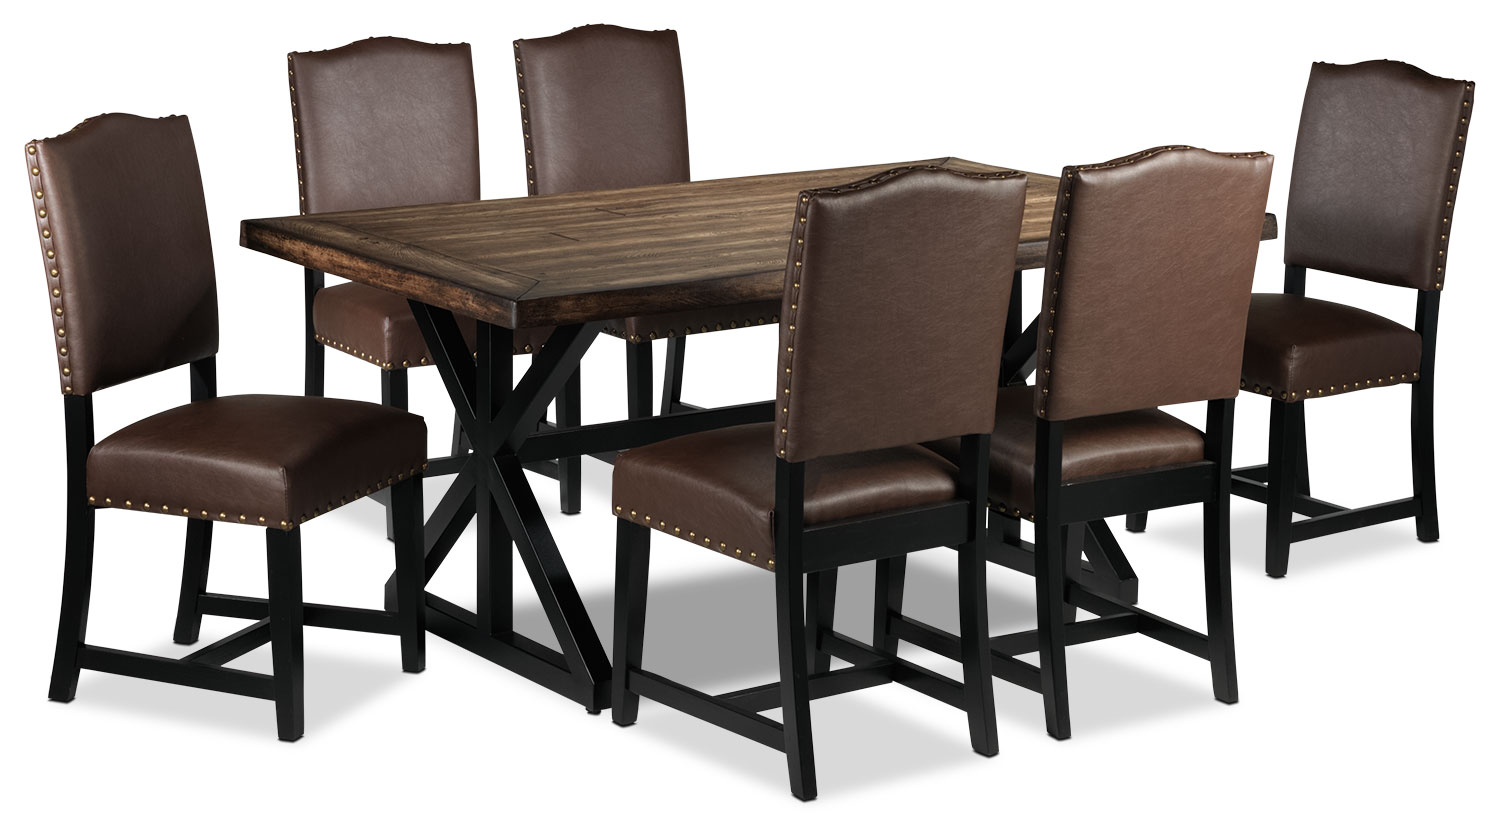 Casual Dining Room Furniture - Mabel 7-Piece Dining Set - Honey and Brown